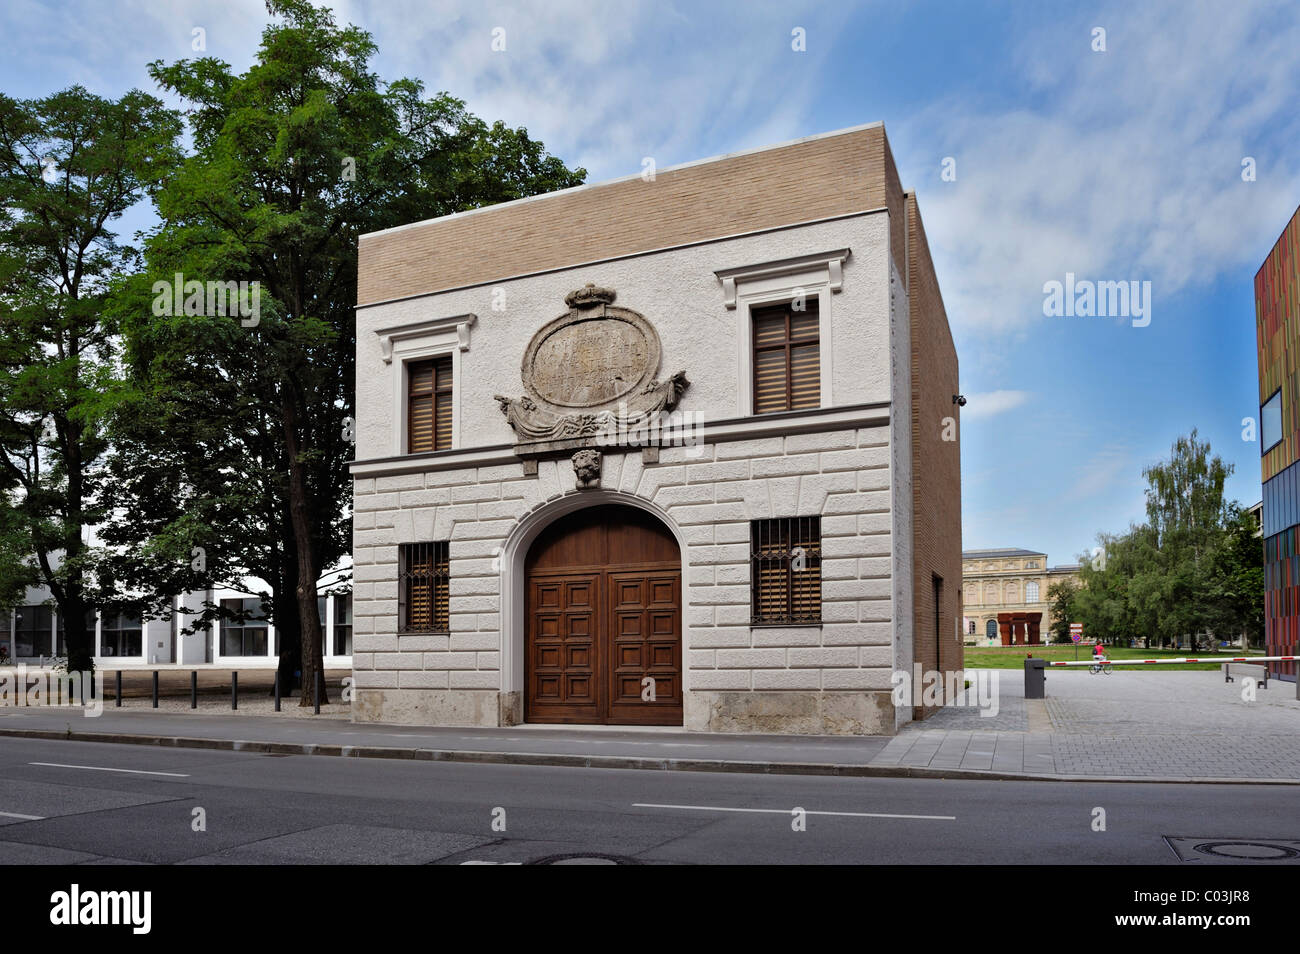 La porte de la Turquie, l'emplacement pour l'art, Tuerkenstrasse, Munich, Bavaria, Germany, Europe Photo Stock